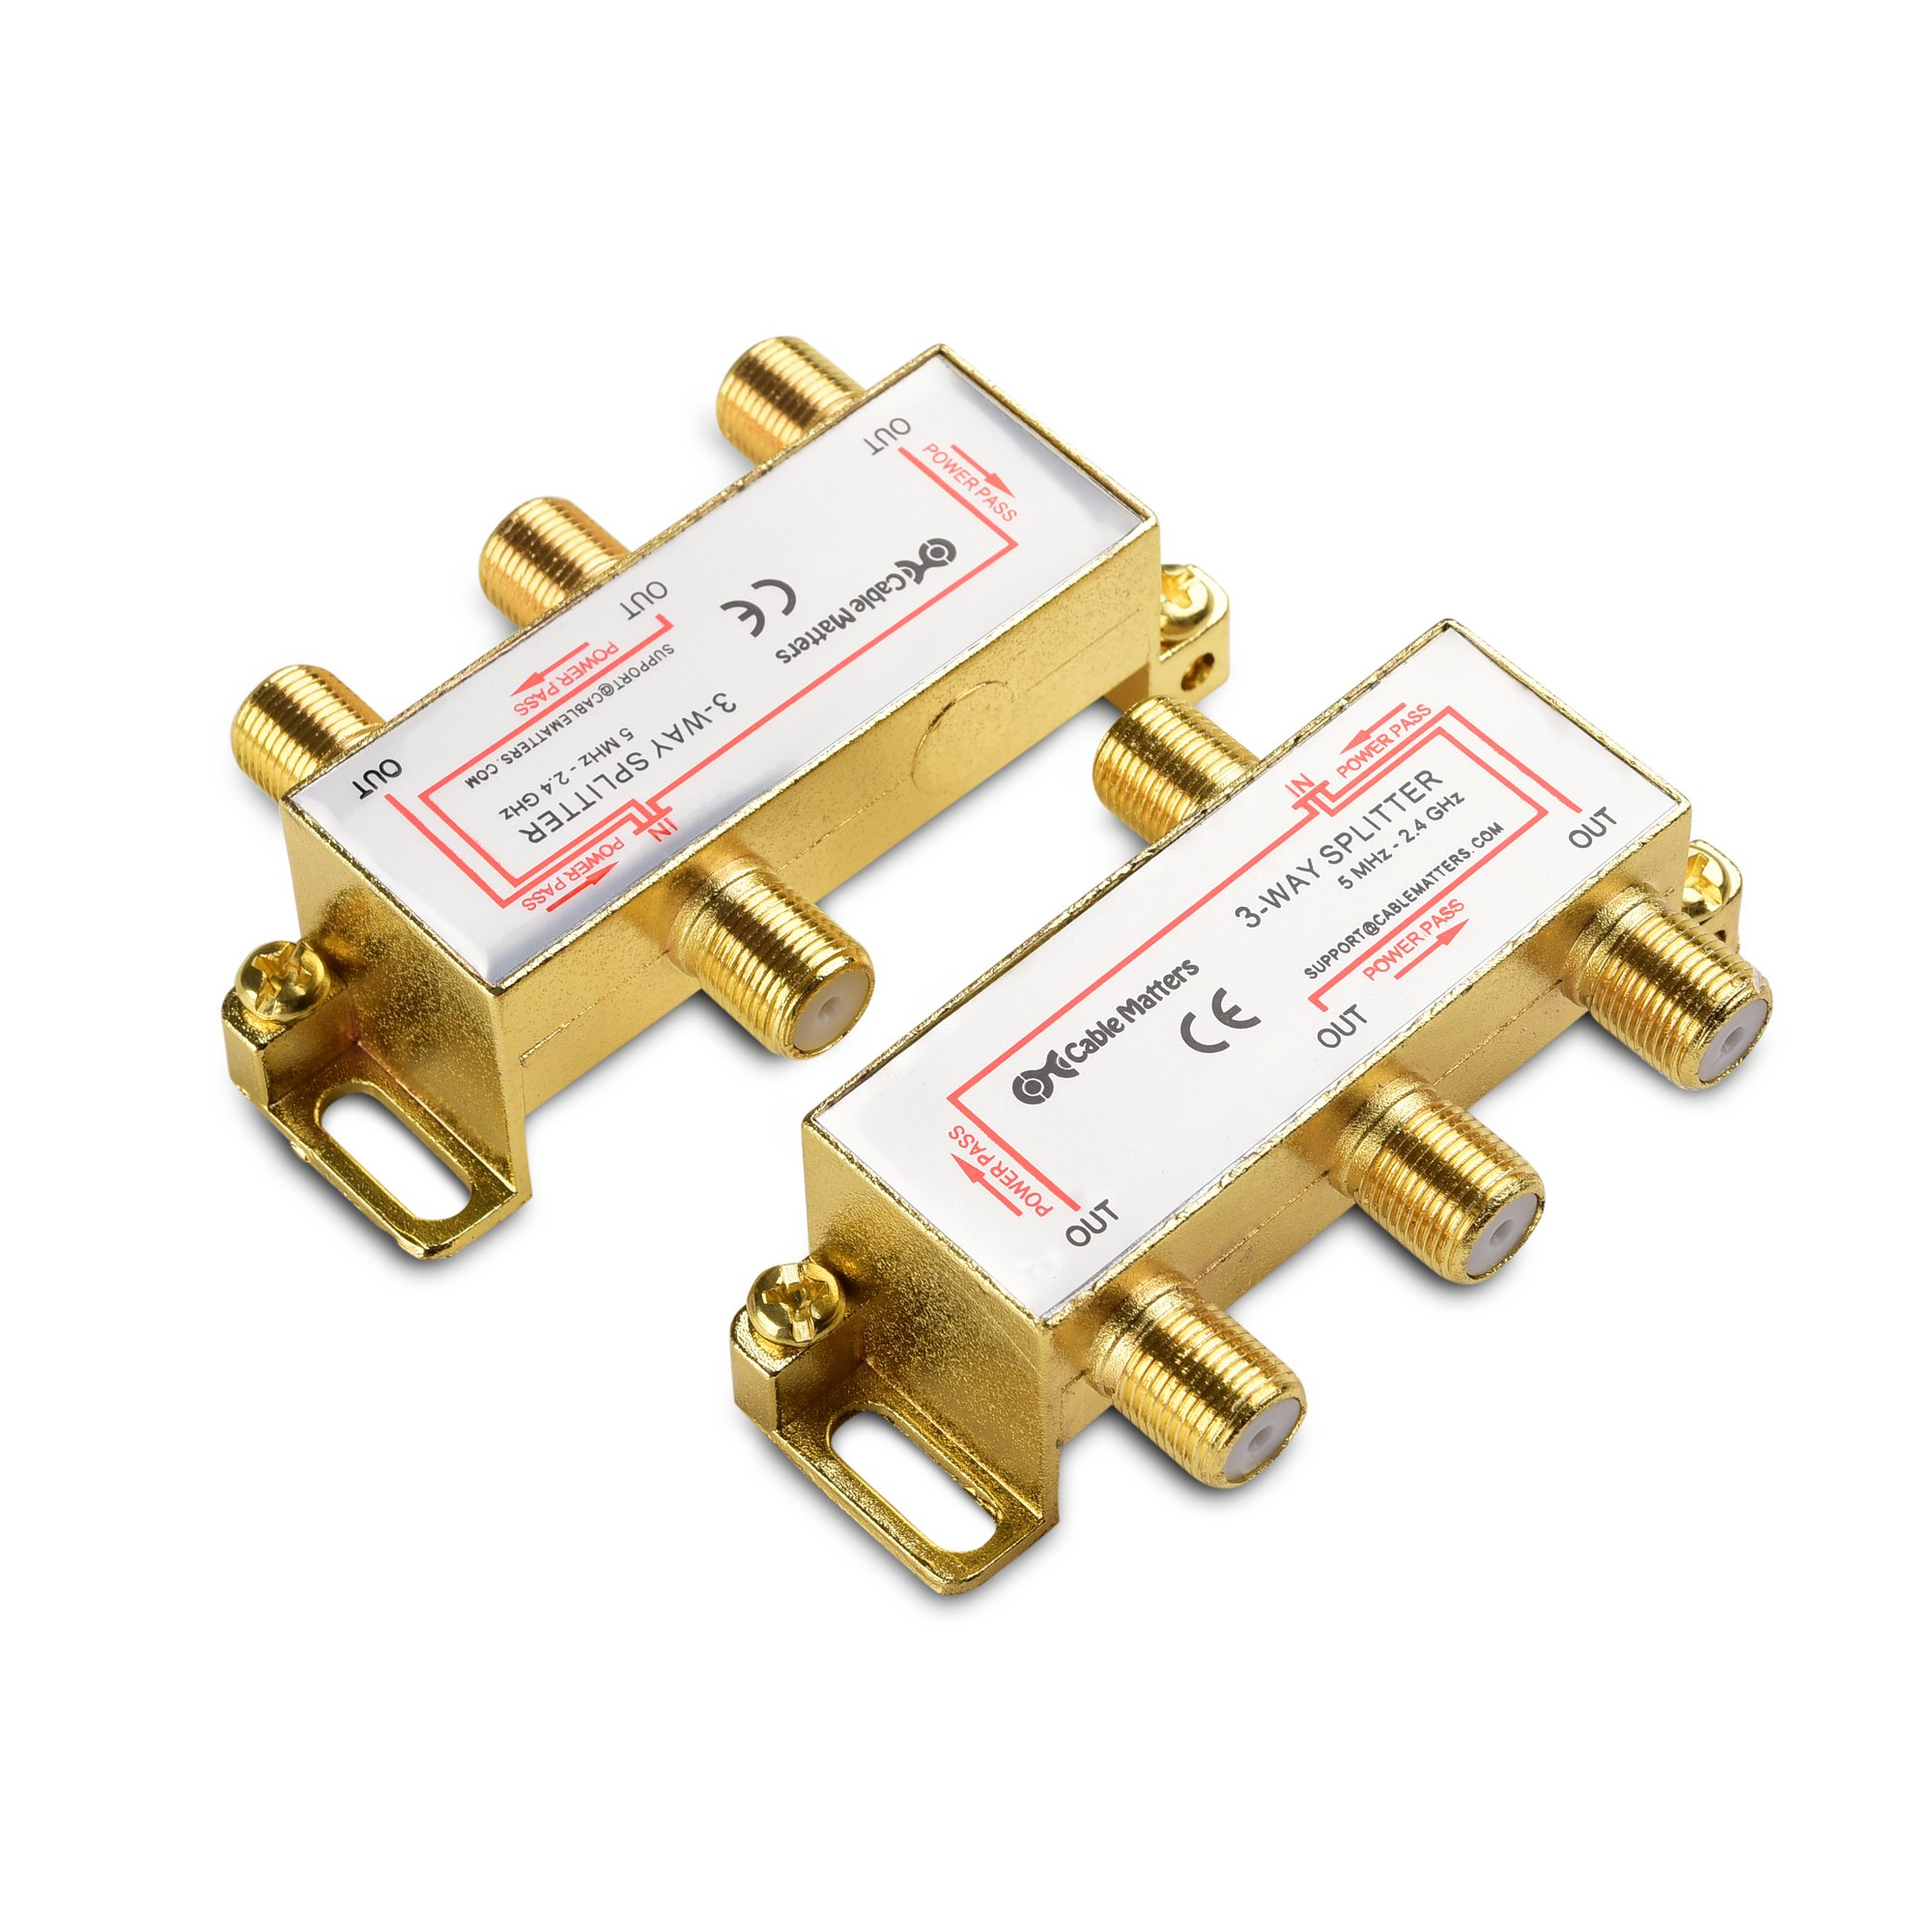 Cable Matters 2 Pack Coaxial Splitter